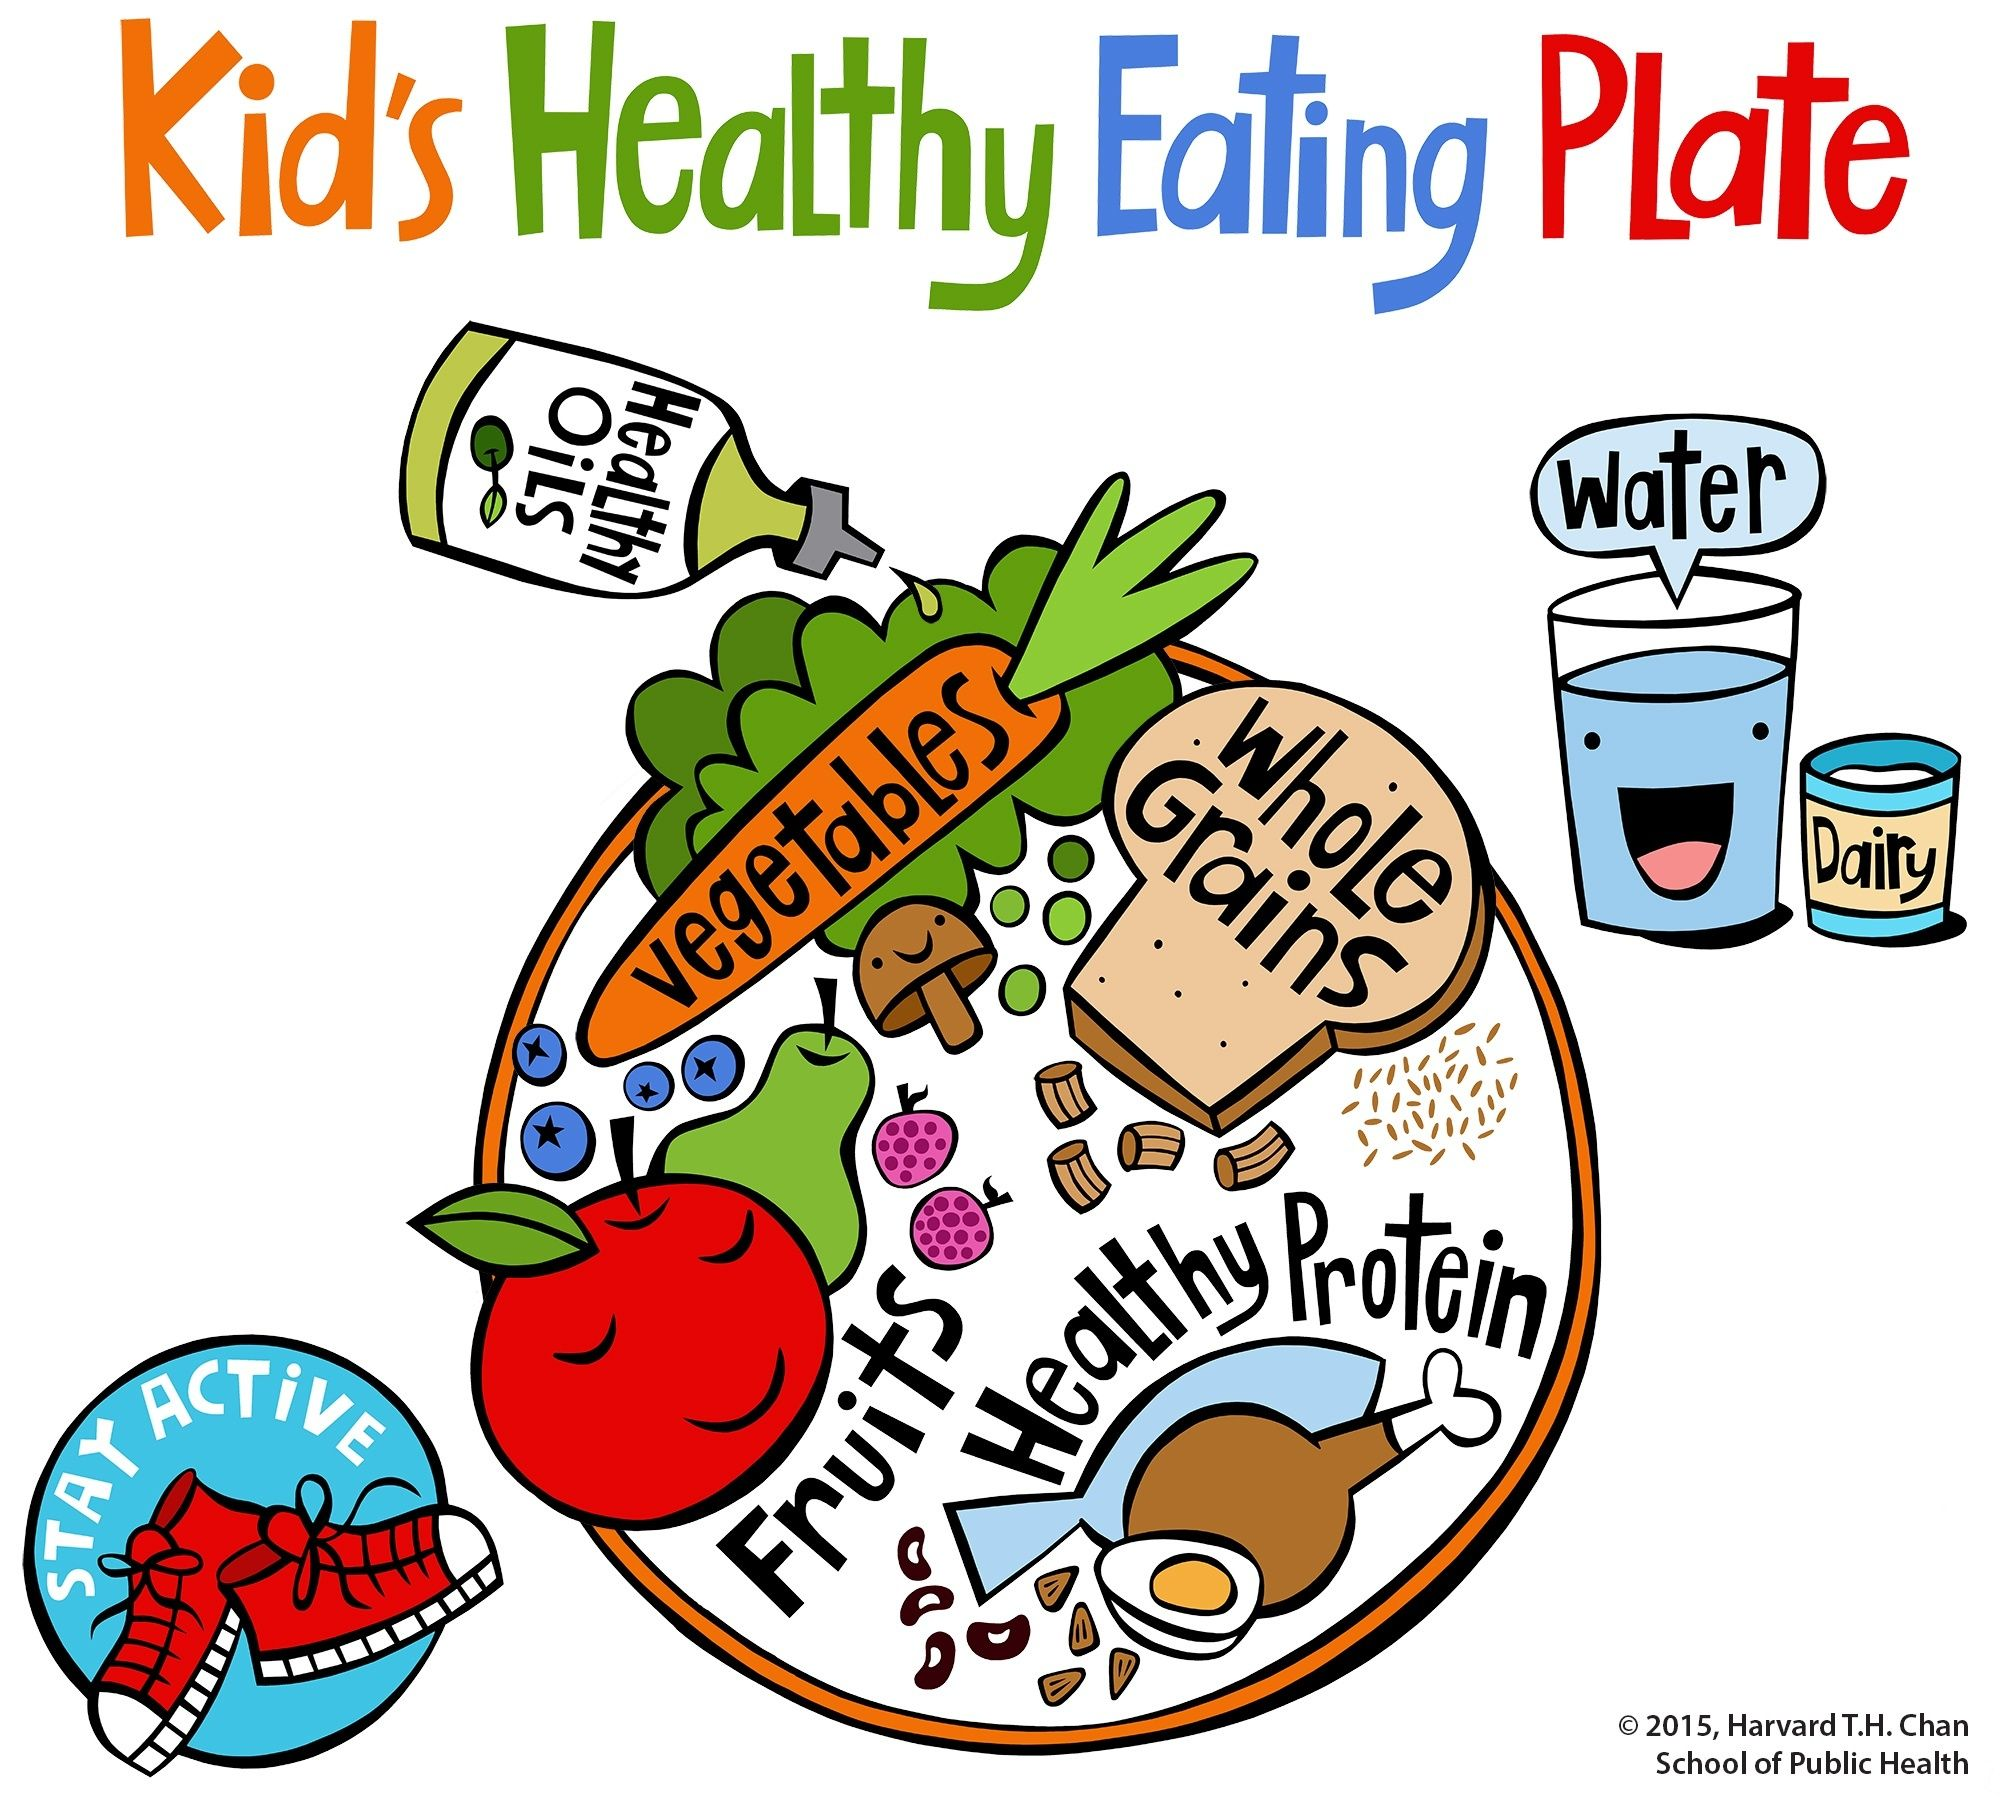 The Kid S Healthy Eating Plate Is A Visual Guide To Help